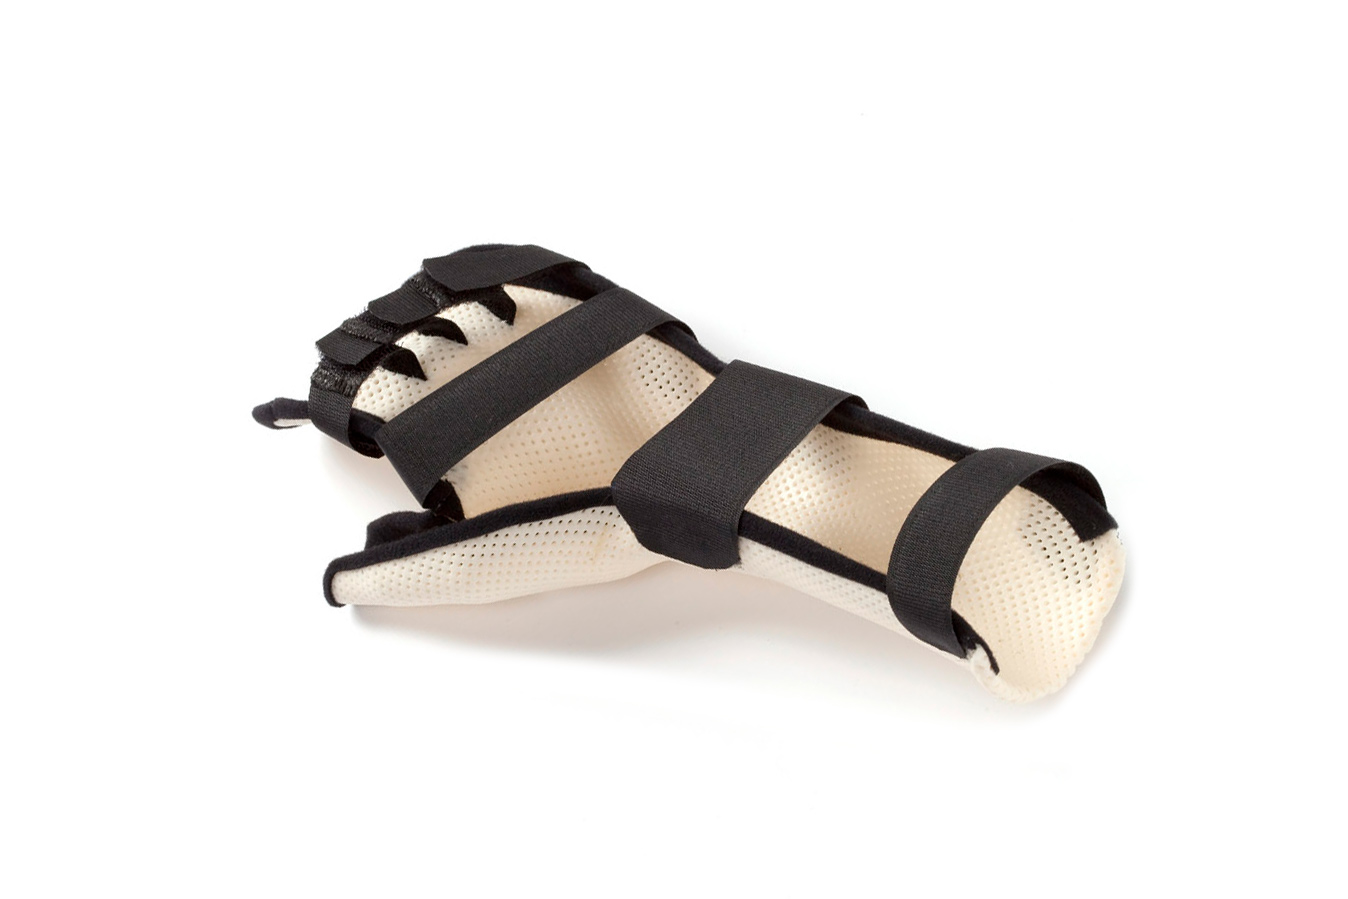 Rheumatoid resting orthosis in Orfilight